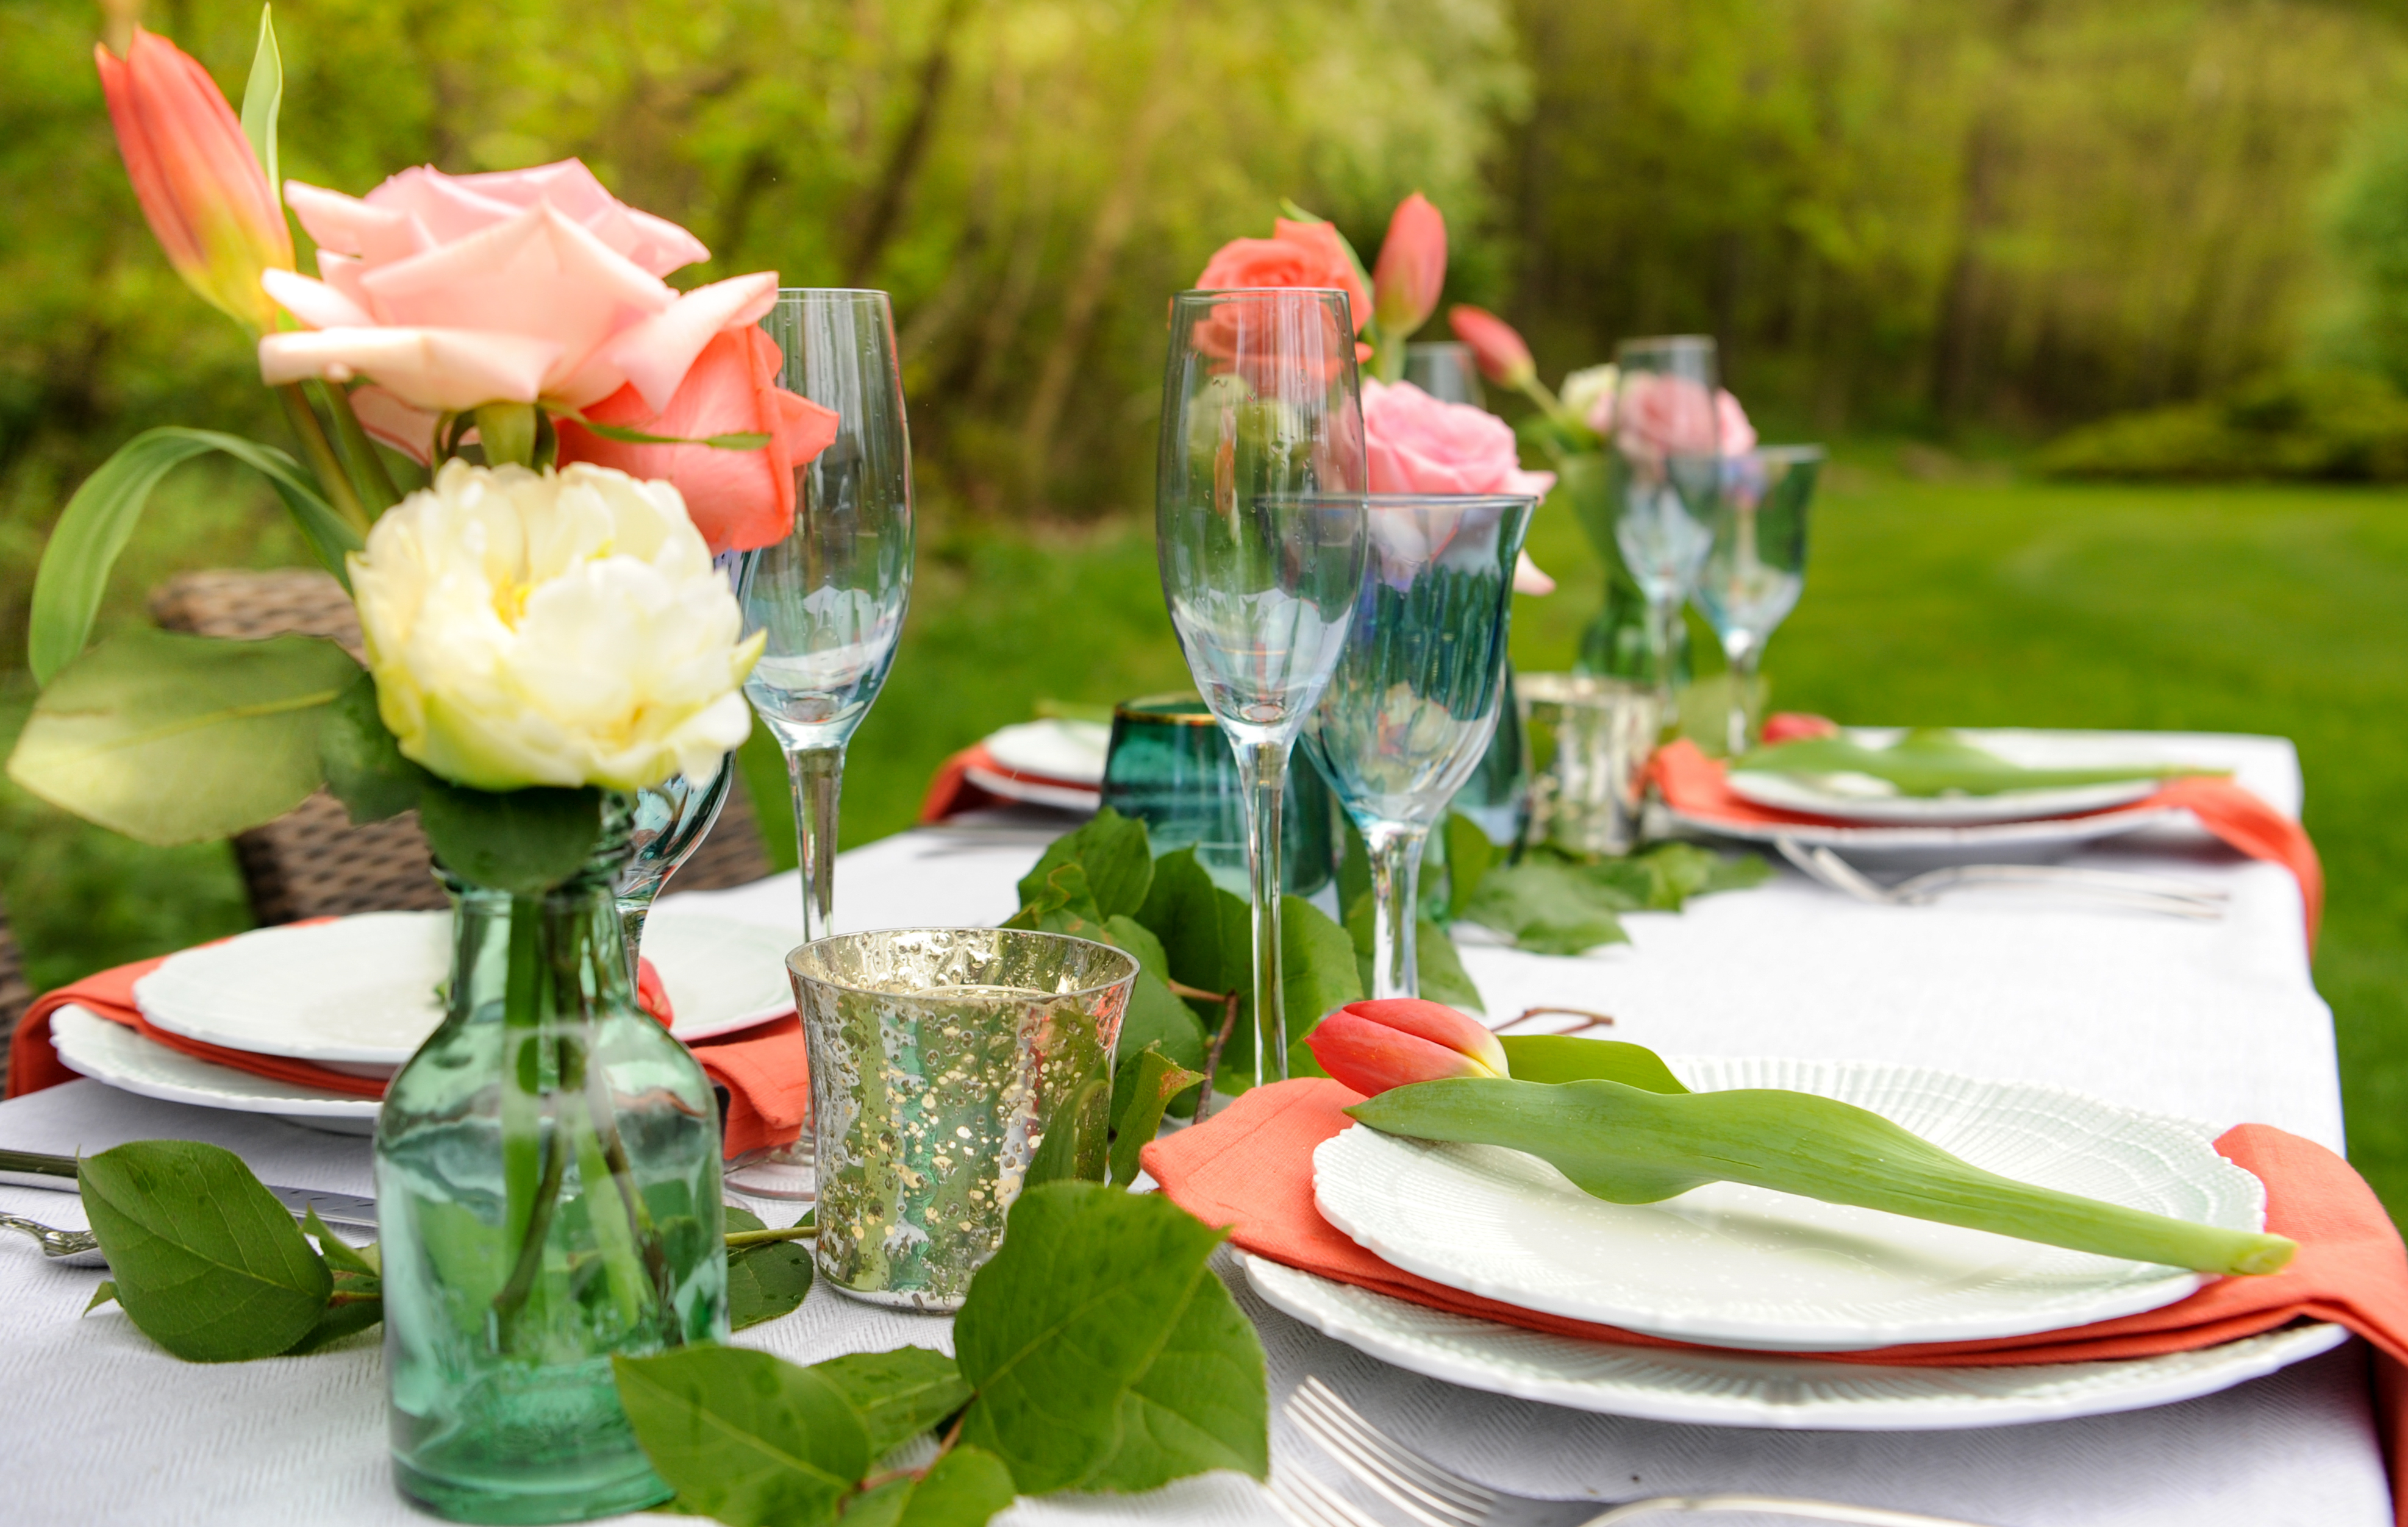 TableSetting2019-1016